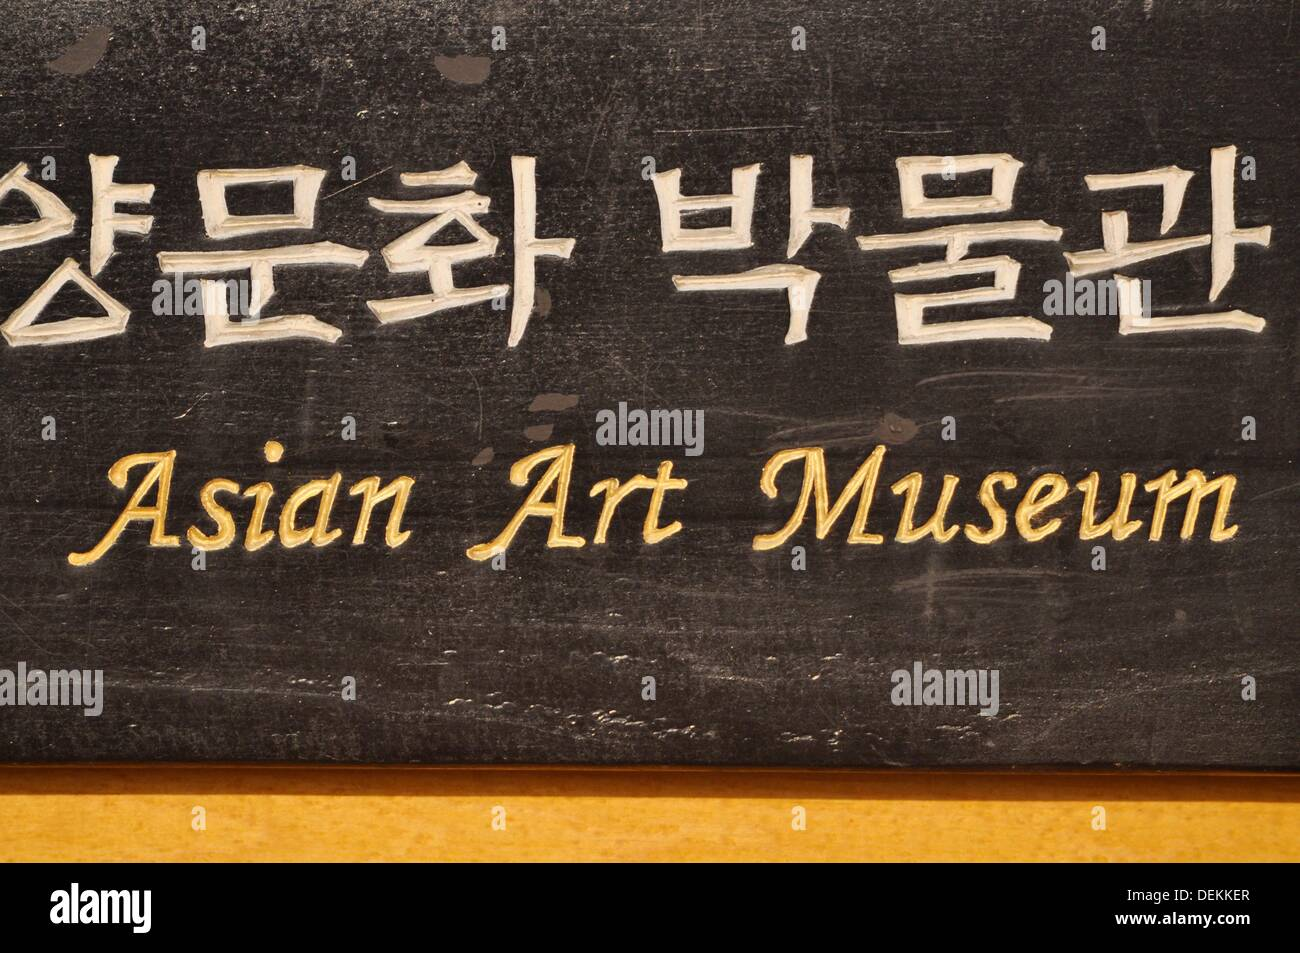 Seoul (South Korea): sign of the Asian Art Museum, in the Bukchon neighborhood - Stock Image